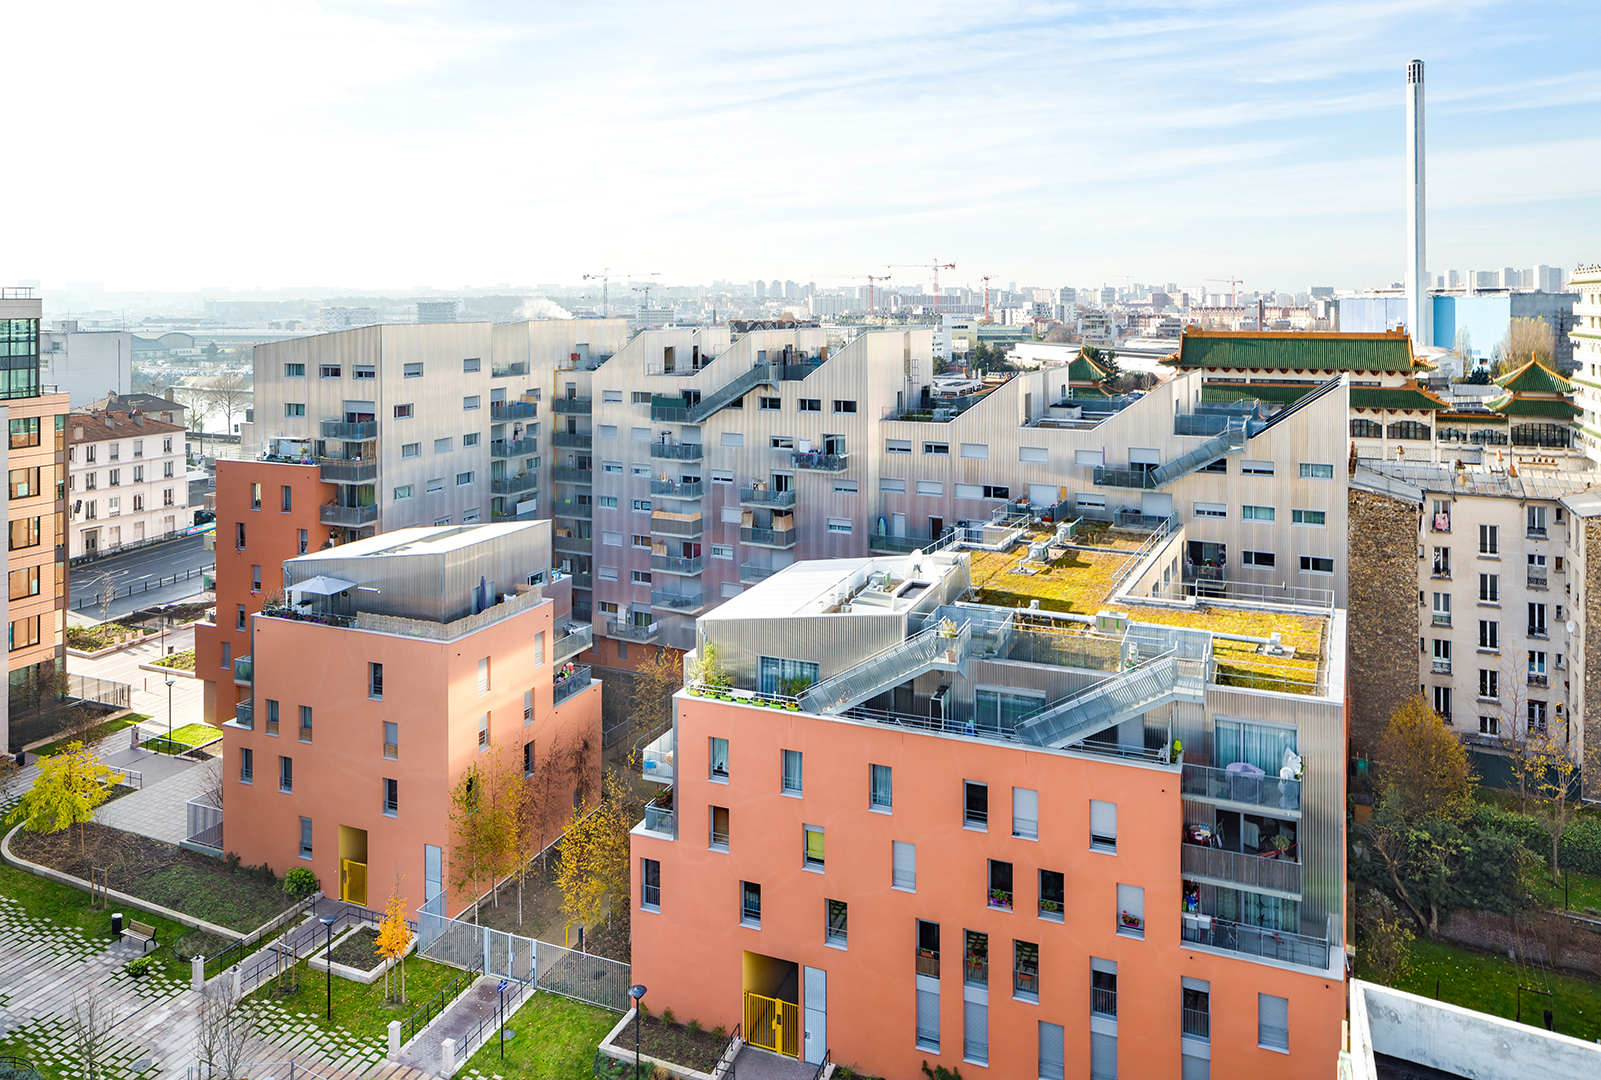 ANMA Alfortville Logements Bords de Marne